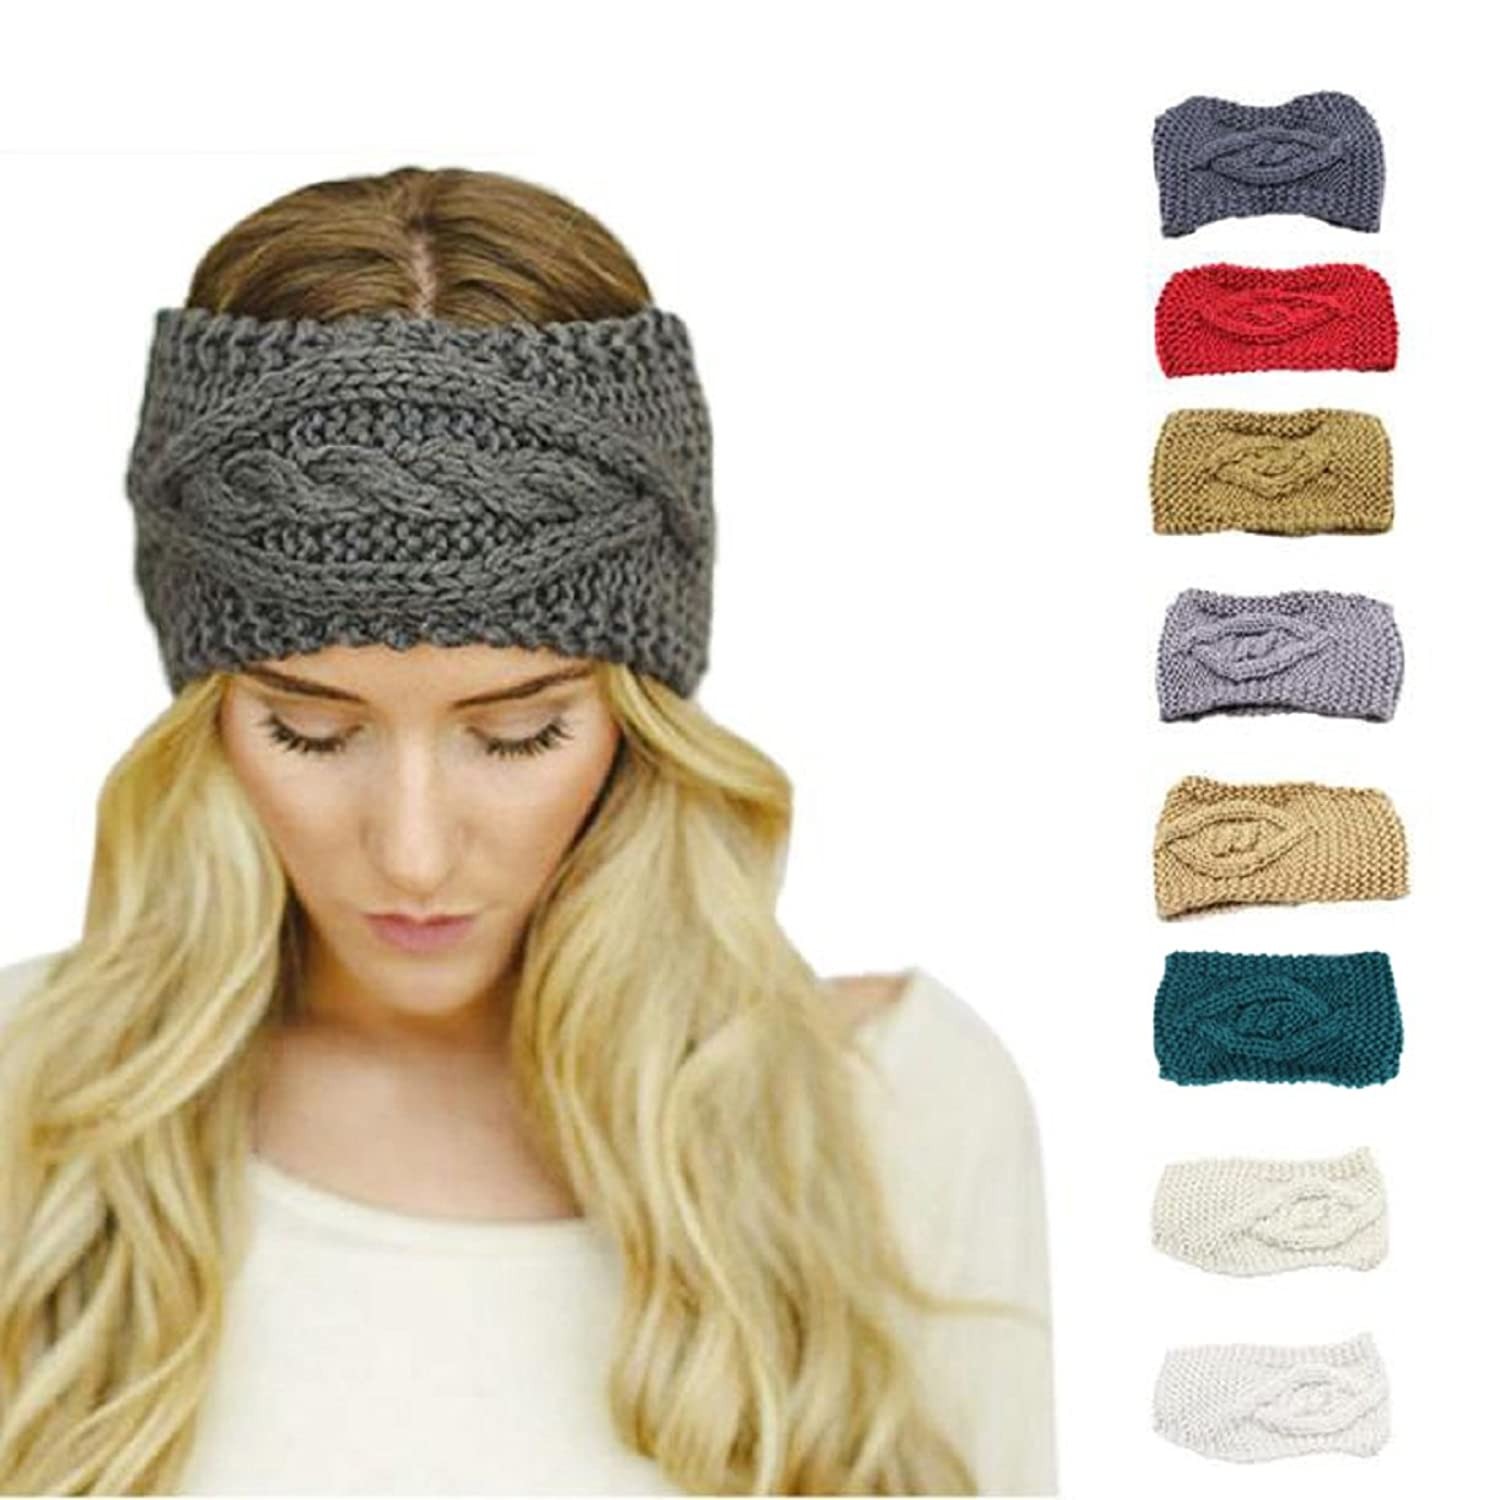 $3.35 SHIPPED Lookatool Womens...